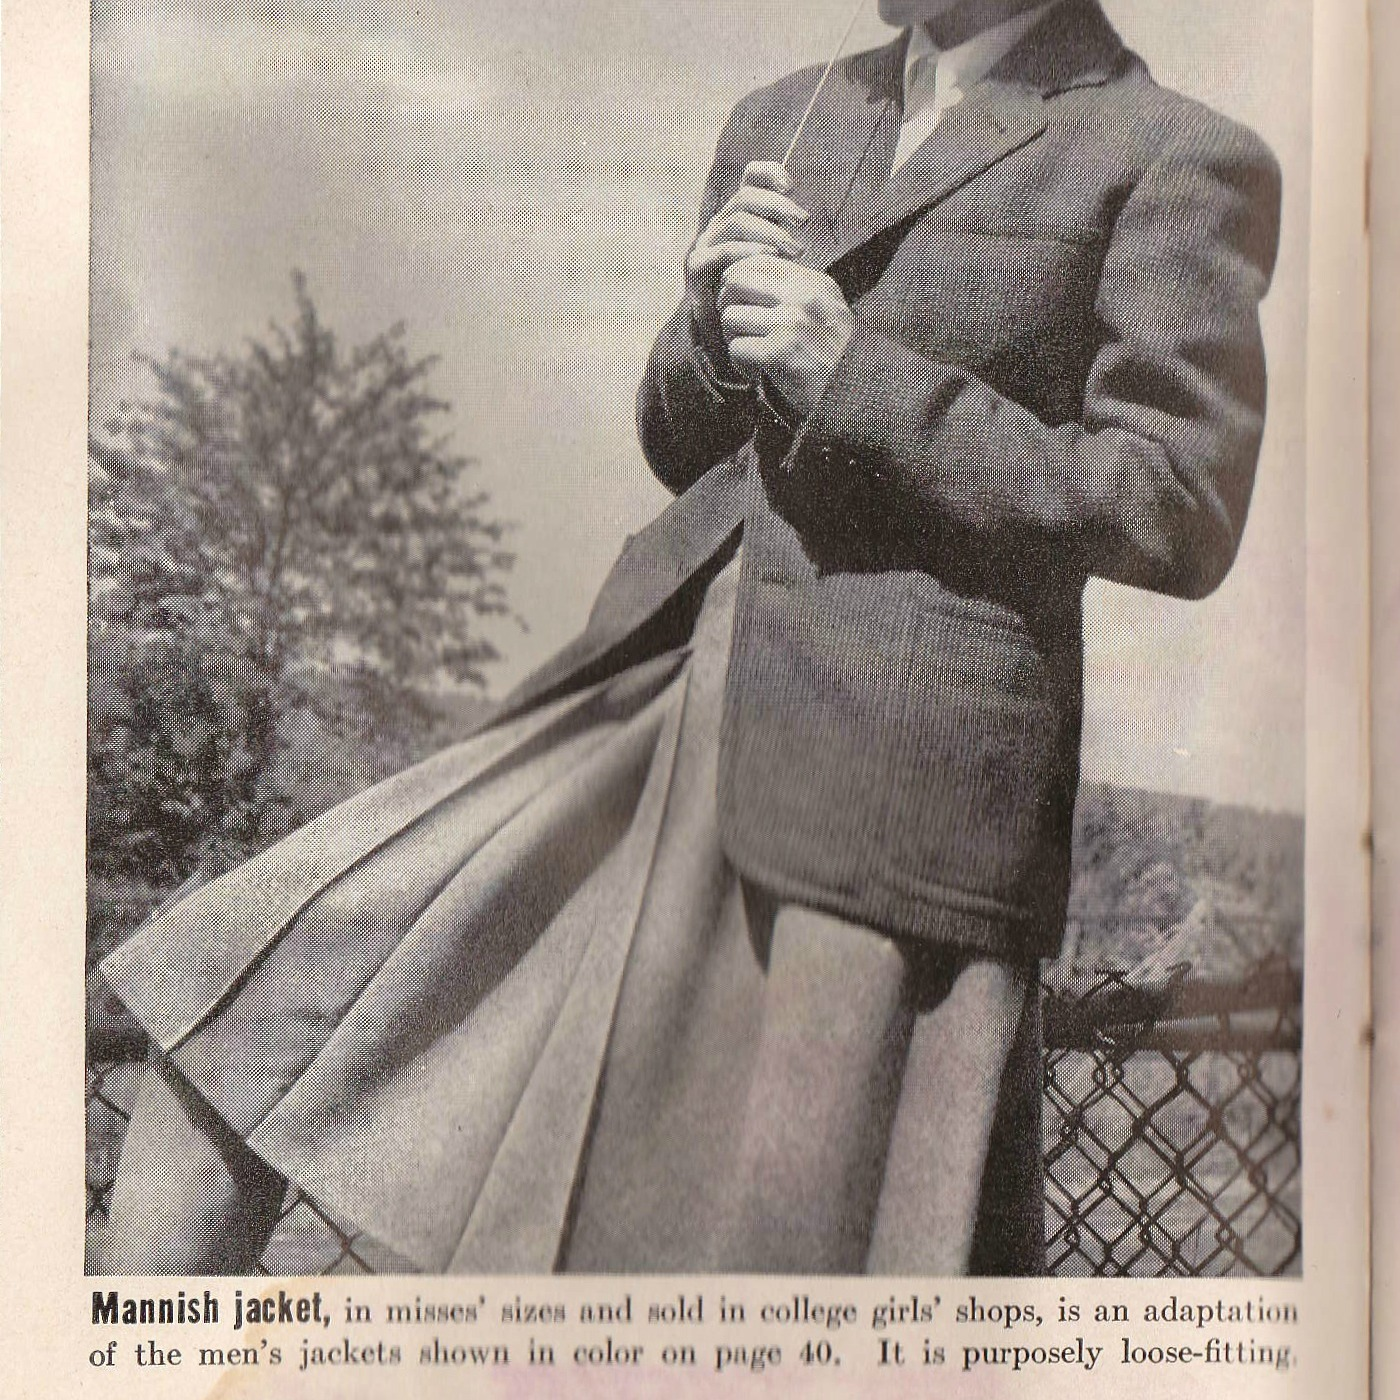 The Mannish Jacket